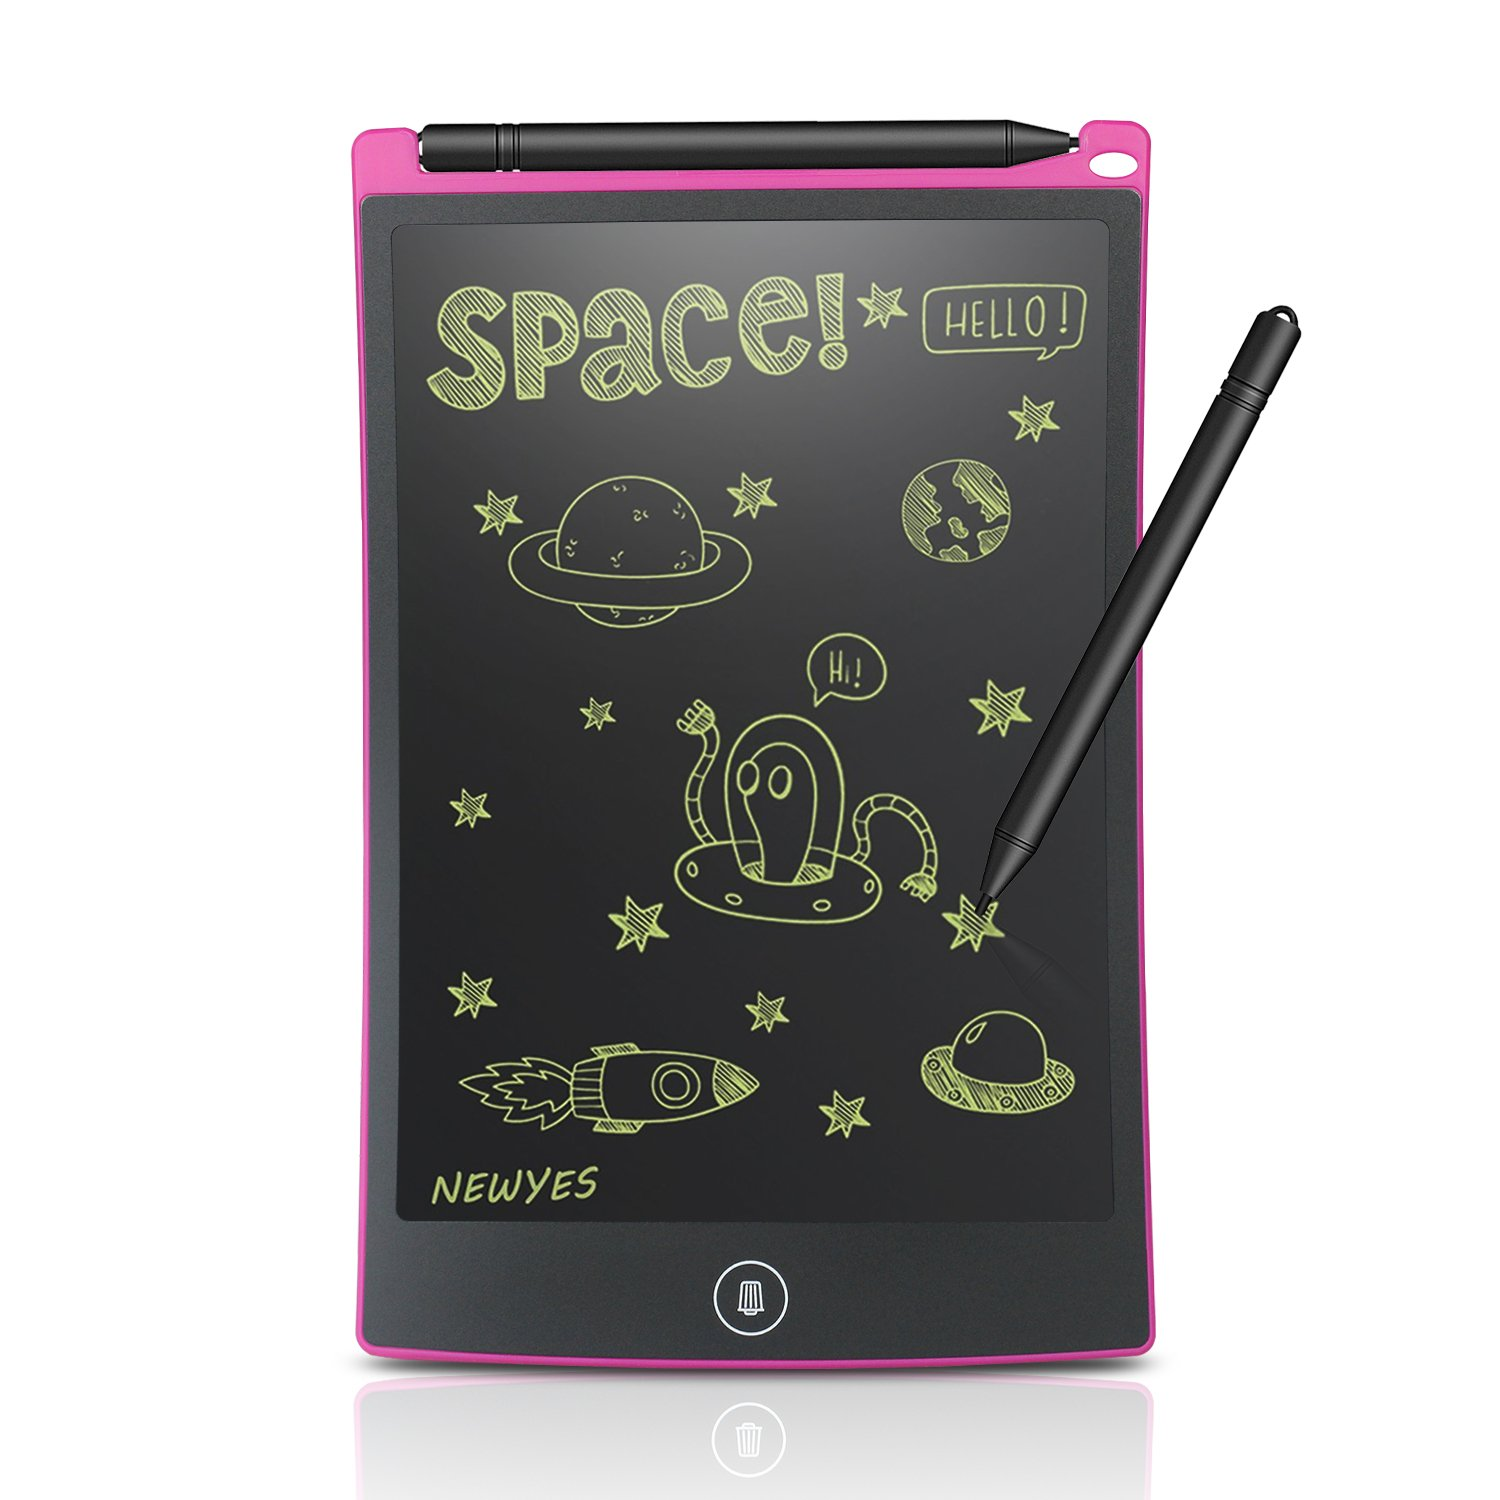 (Upgrade Version) Robot Pad 8.5 Inch LCD Writing Tablet with Brighter Writing and Lock to Prevent Accidental Deletion Office Klass Home Doodle Drawing Gifts for Kids and Adults Newyes